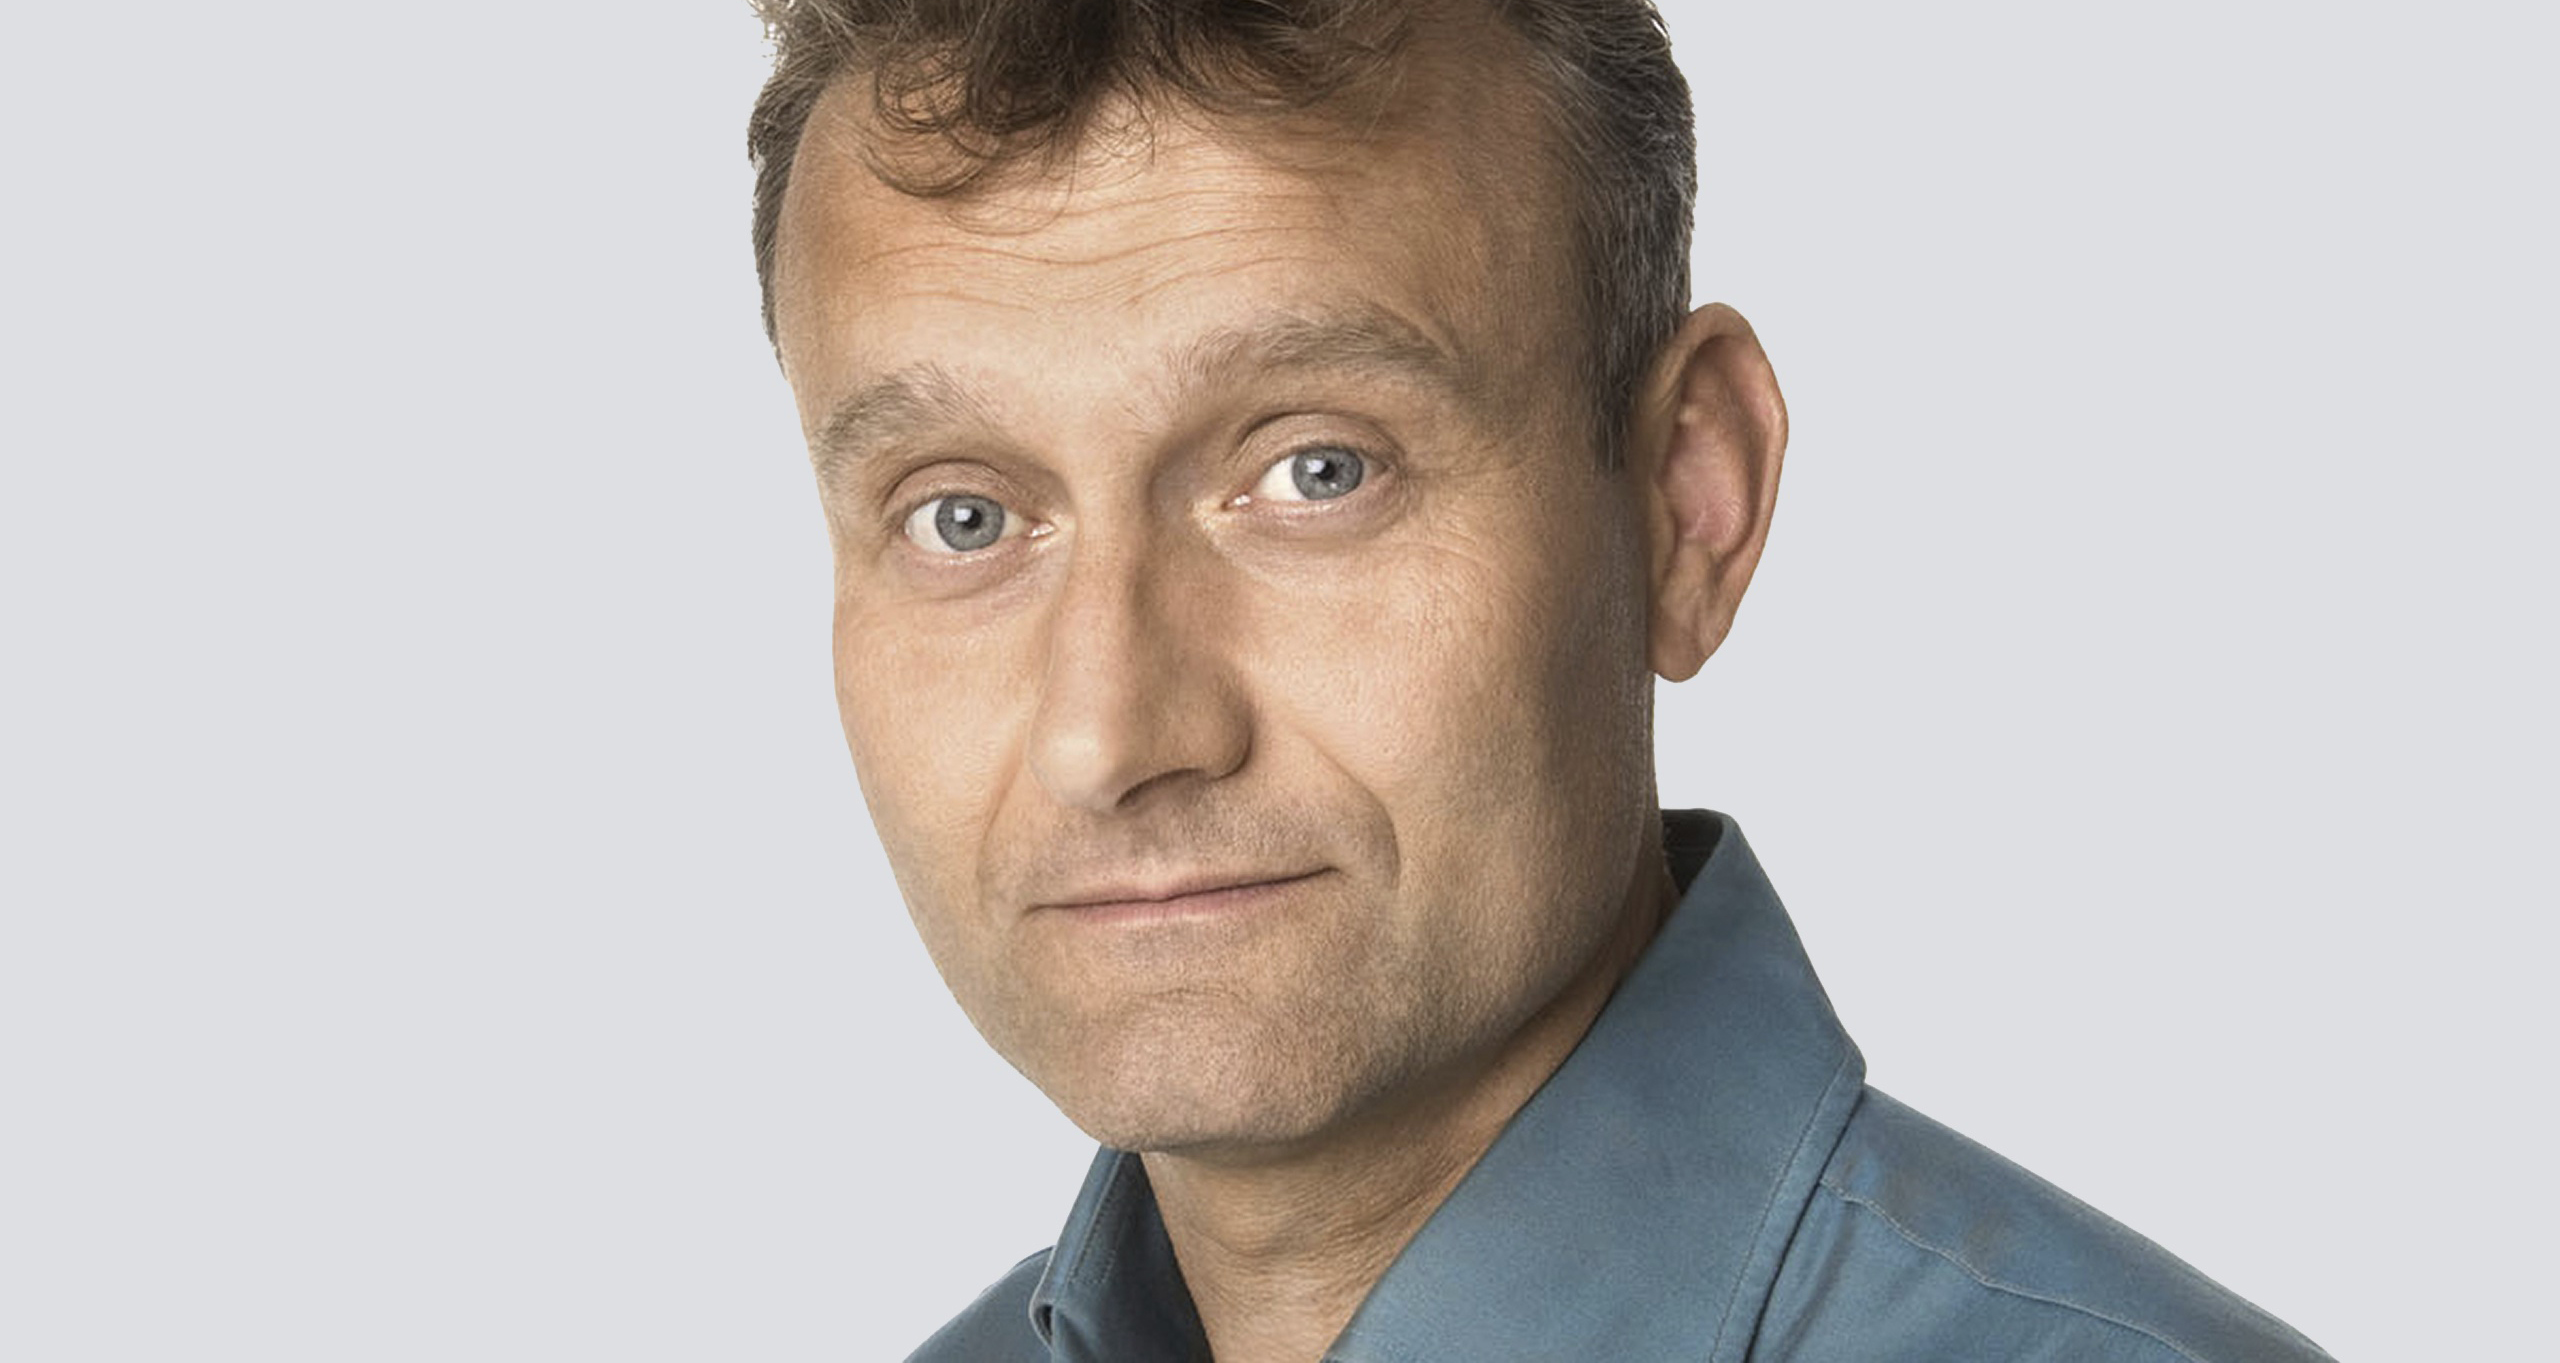 hugh dennis showaddywaddyhugh dennis qi, hugh dennis, hugh dennis showaddywaddy, hugh dennis stand up, hugh dennis height, hugh dennis and steve punt, hugh dennis frankie boyle, hugh dennis tour, hugh dennis twitter, hugh dennis net worth, hugh dennis wife, hugh dennis sitcom, hugh dennis imdb, hugh dennis voice over, hugh dennis not going out, hugh dennis prince philip, hugh dennis milky milky, hugh dennis agent, hugh dennis dinosaur, hugh dennis father